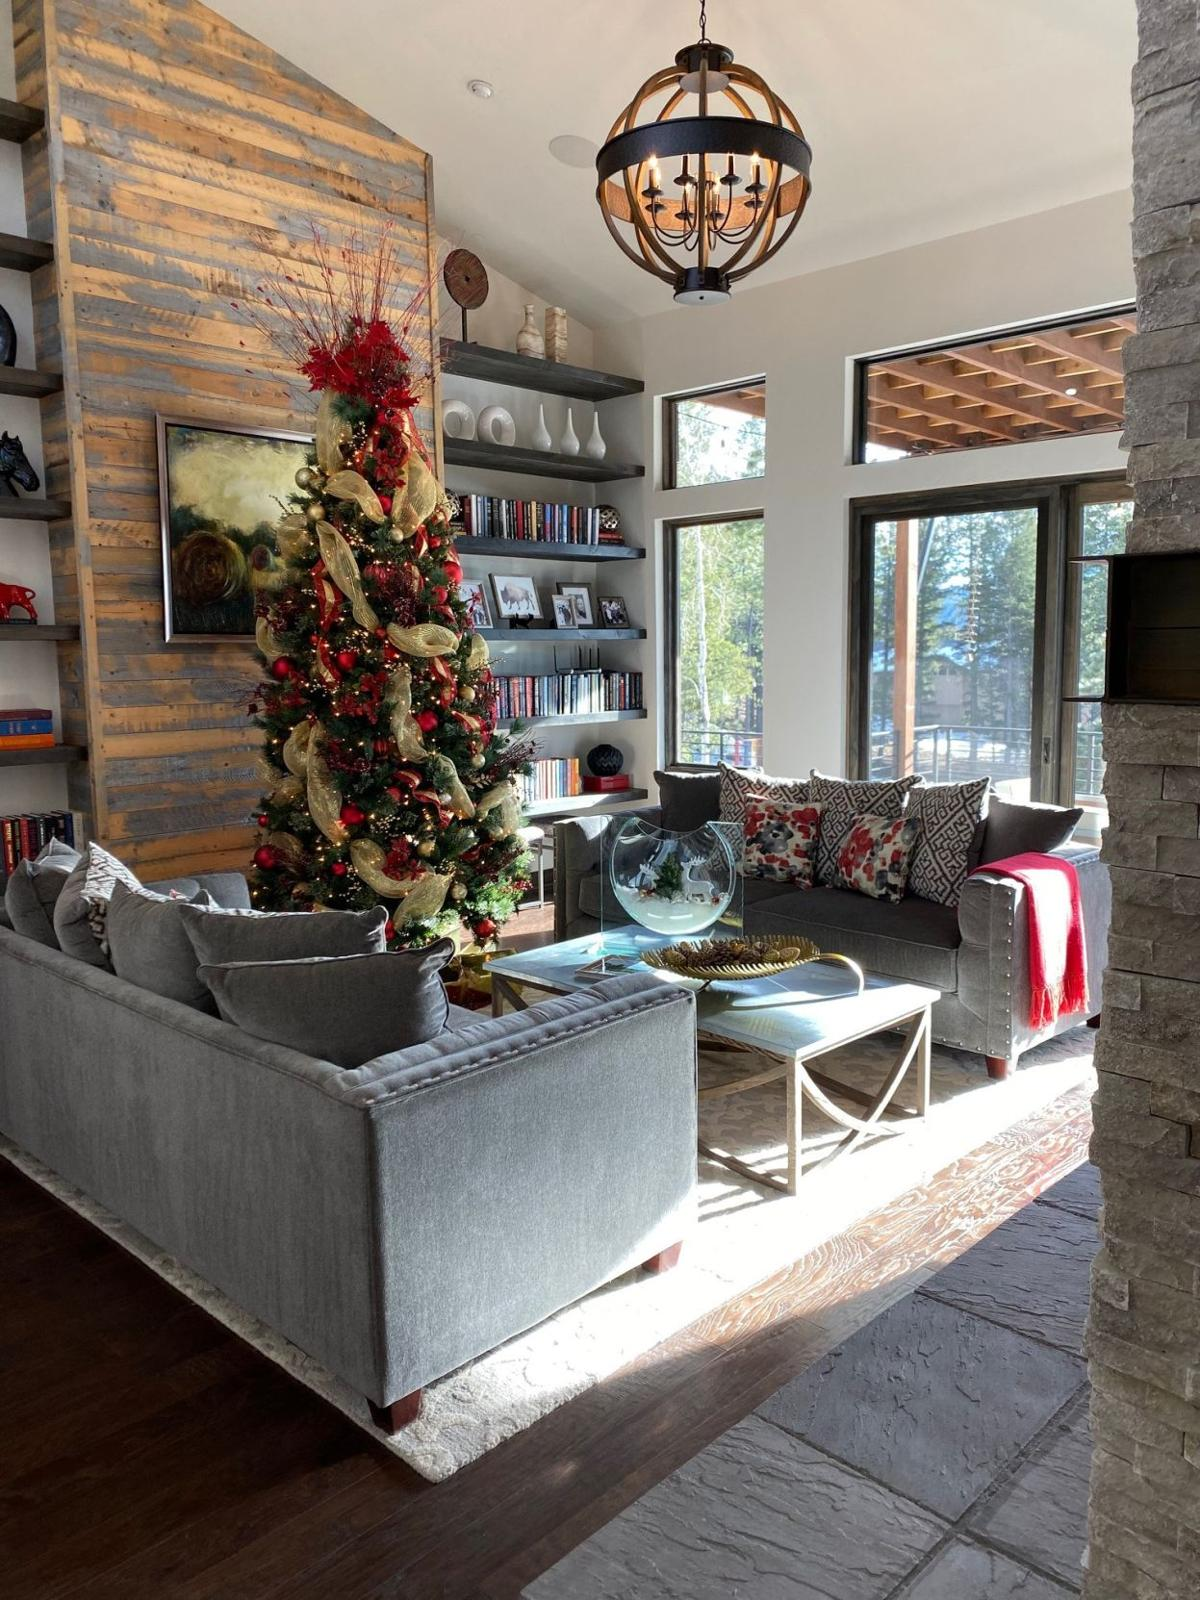 Getting festive at Holiday Home Tour